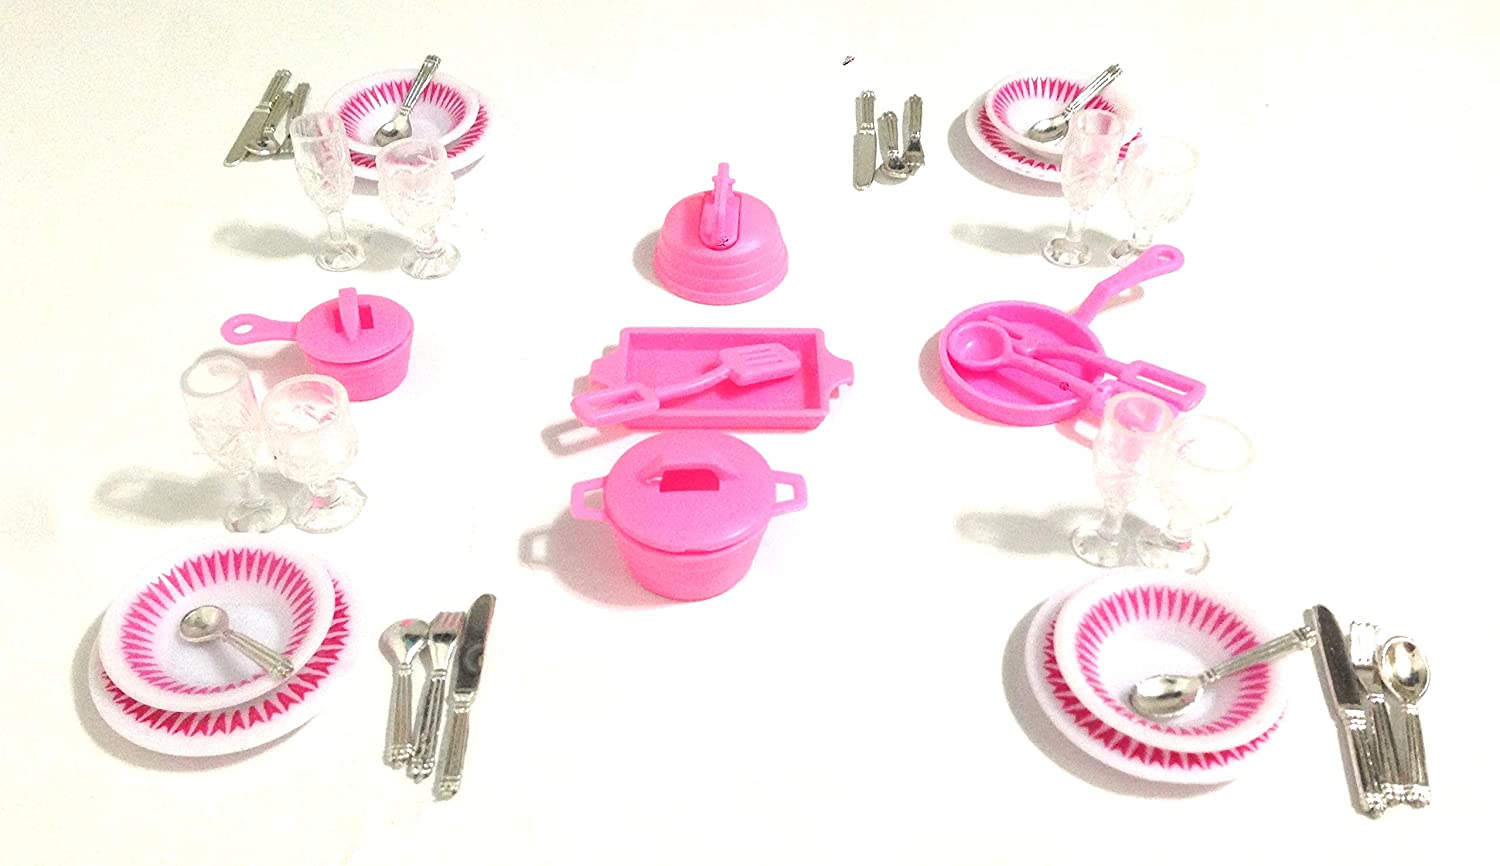 Gloria Dollhouse Furniture Accessories Plate Glasses Spoon Set zfinding SG/_B009WVDMKS/_US